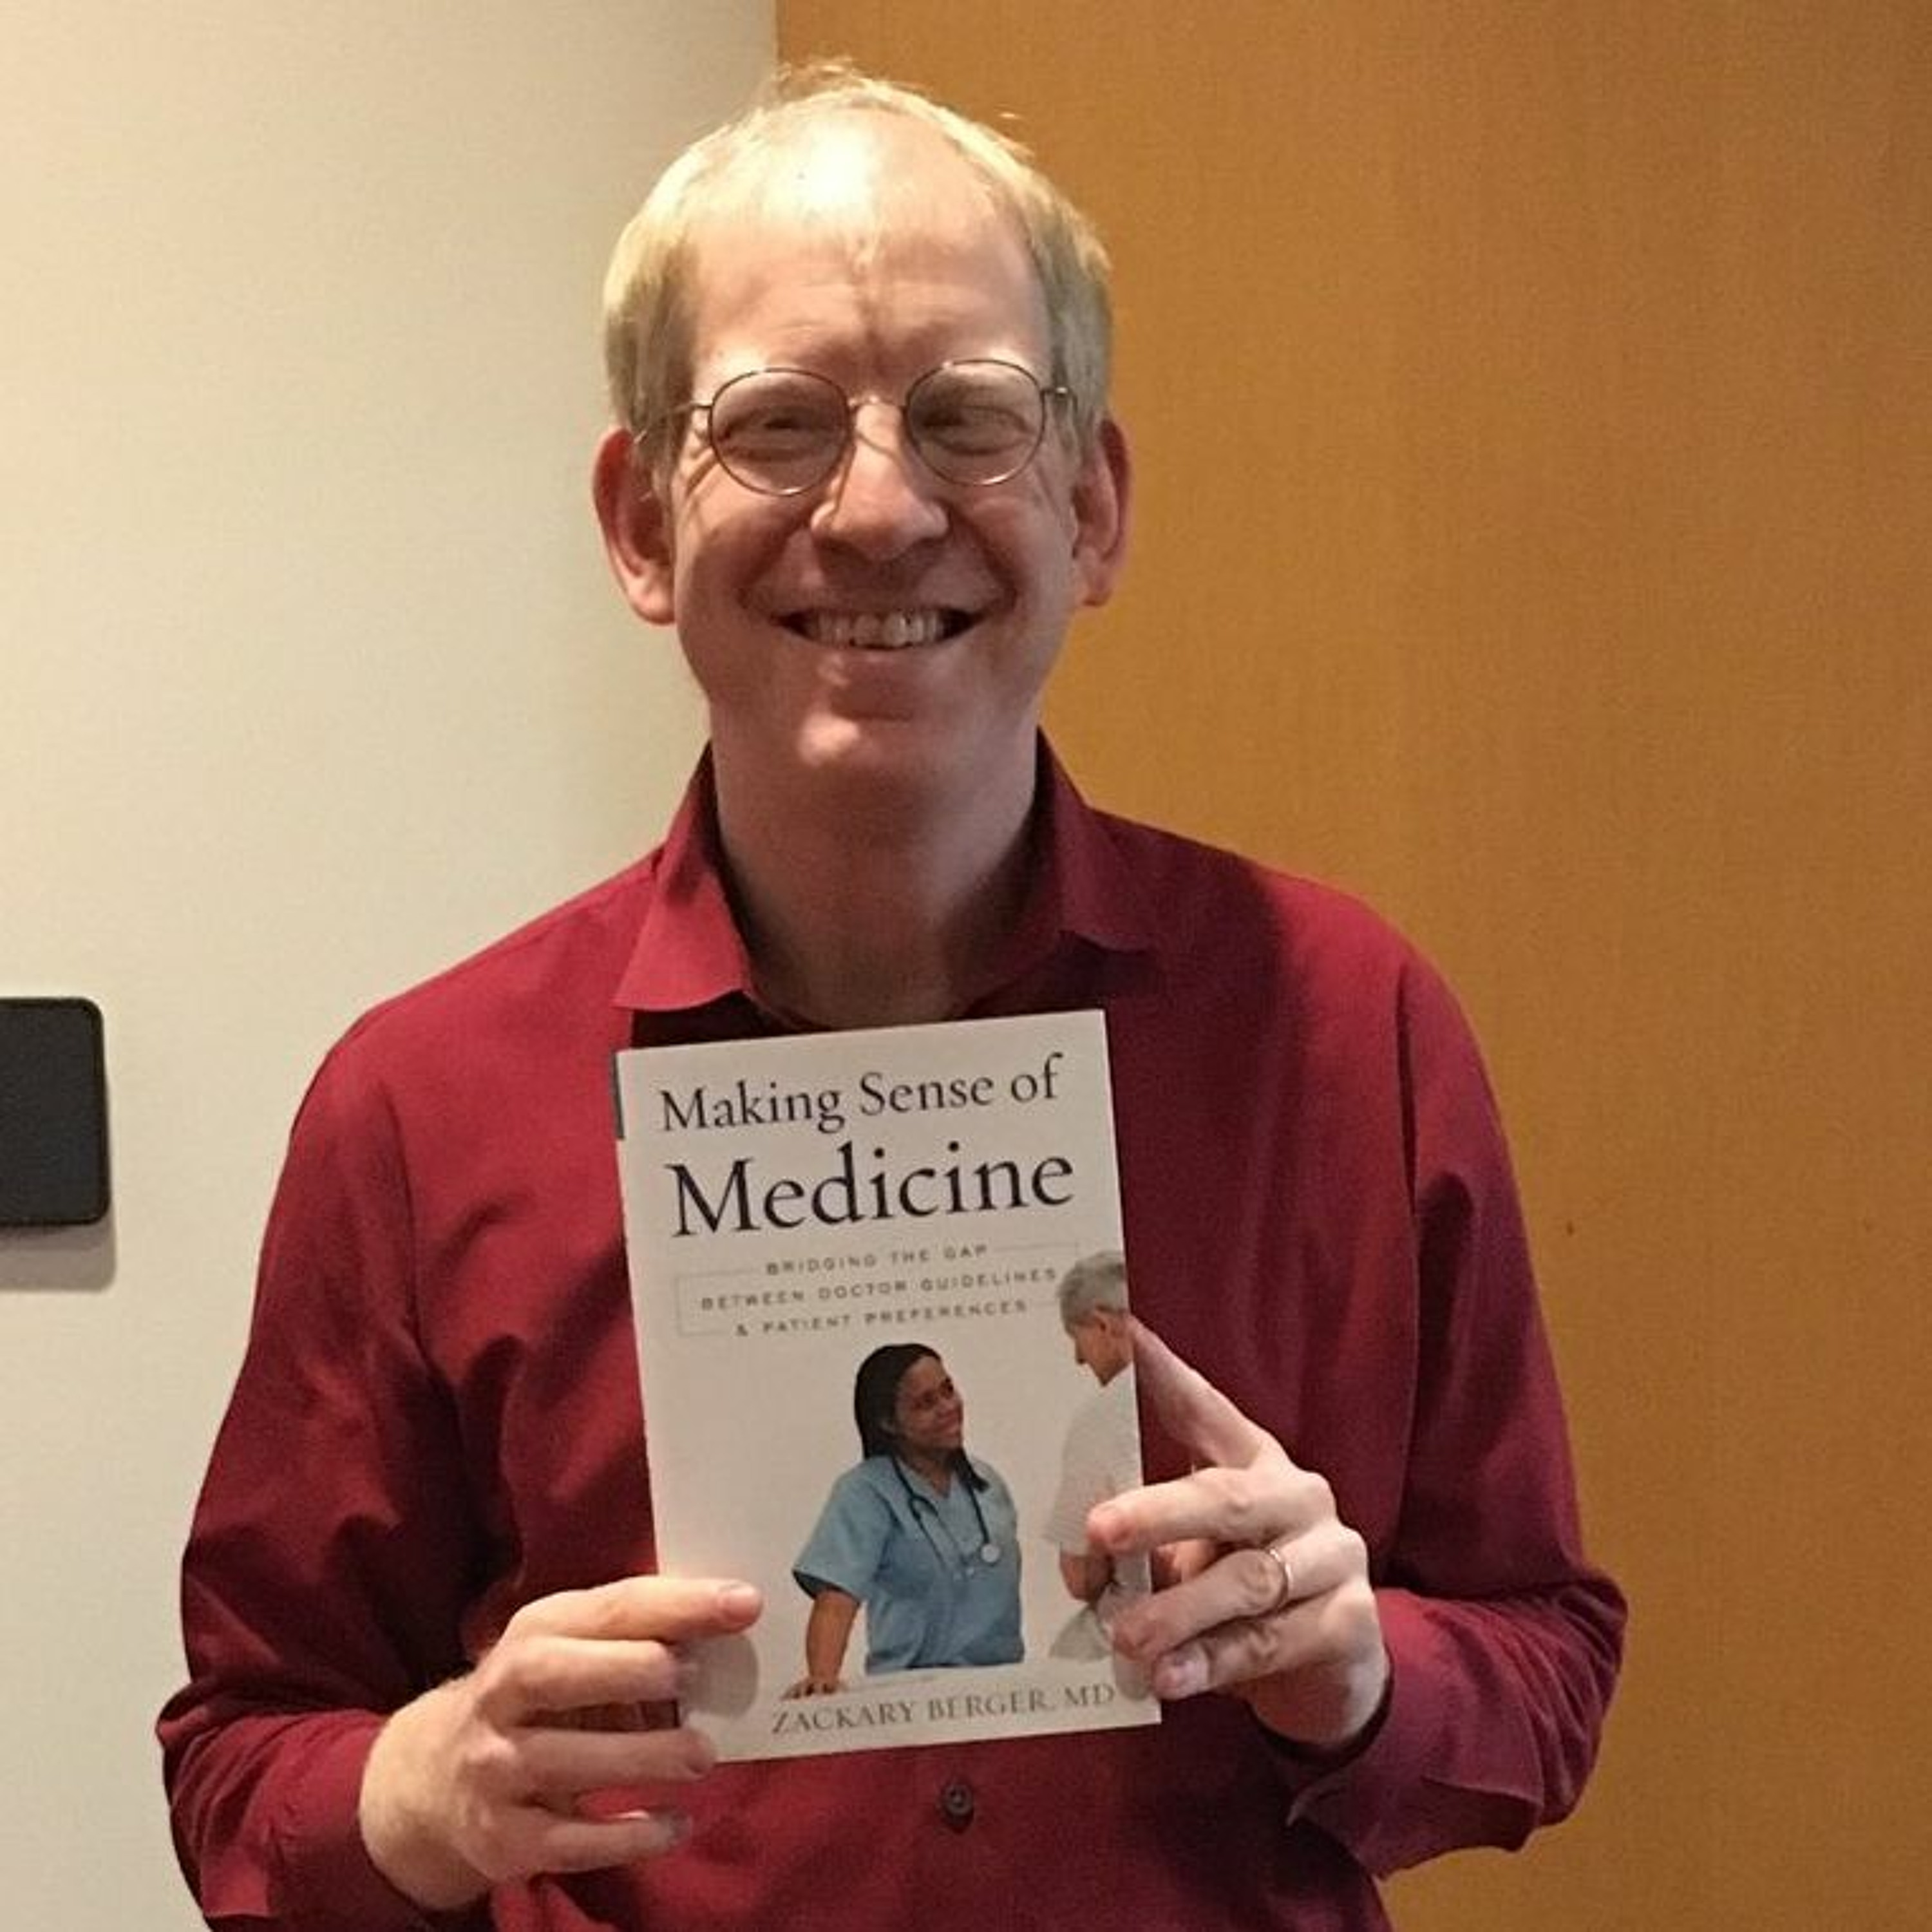 Making Sense of Medicine: Reading of Chapter 3 (Poverty) by Zackary Berger